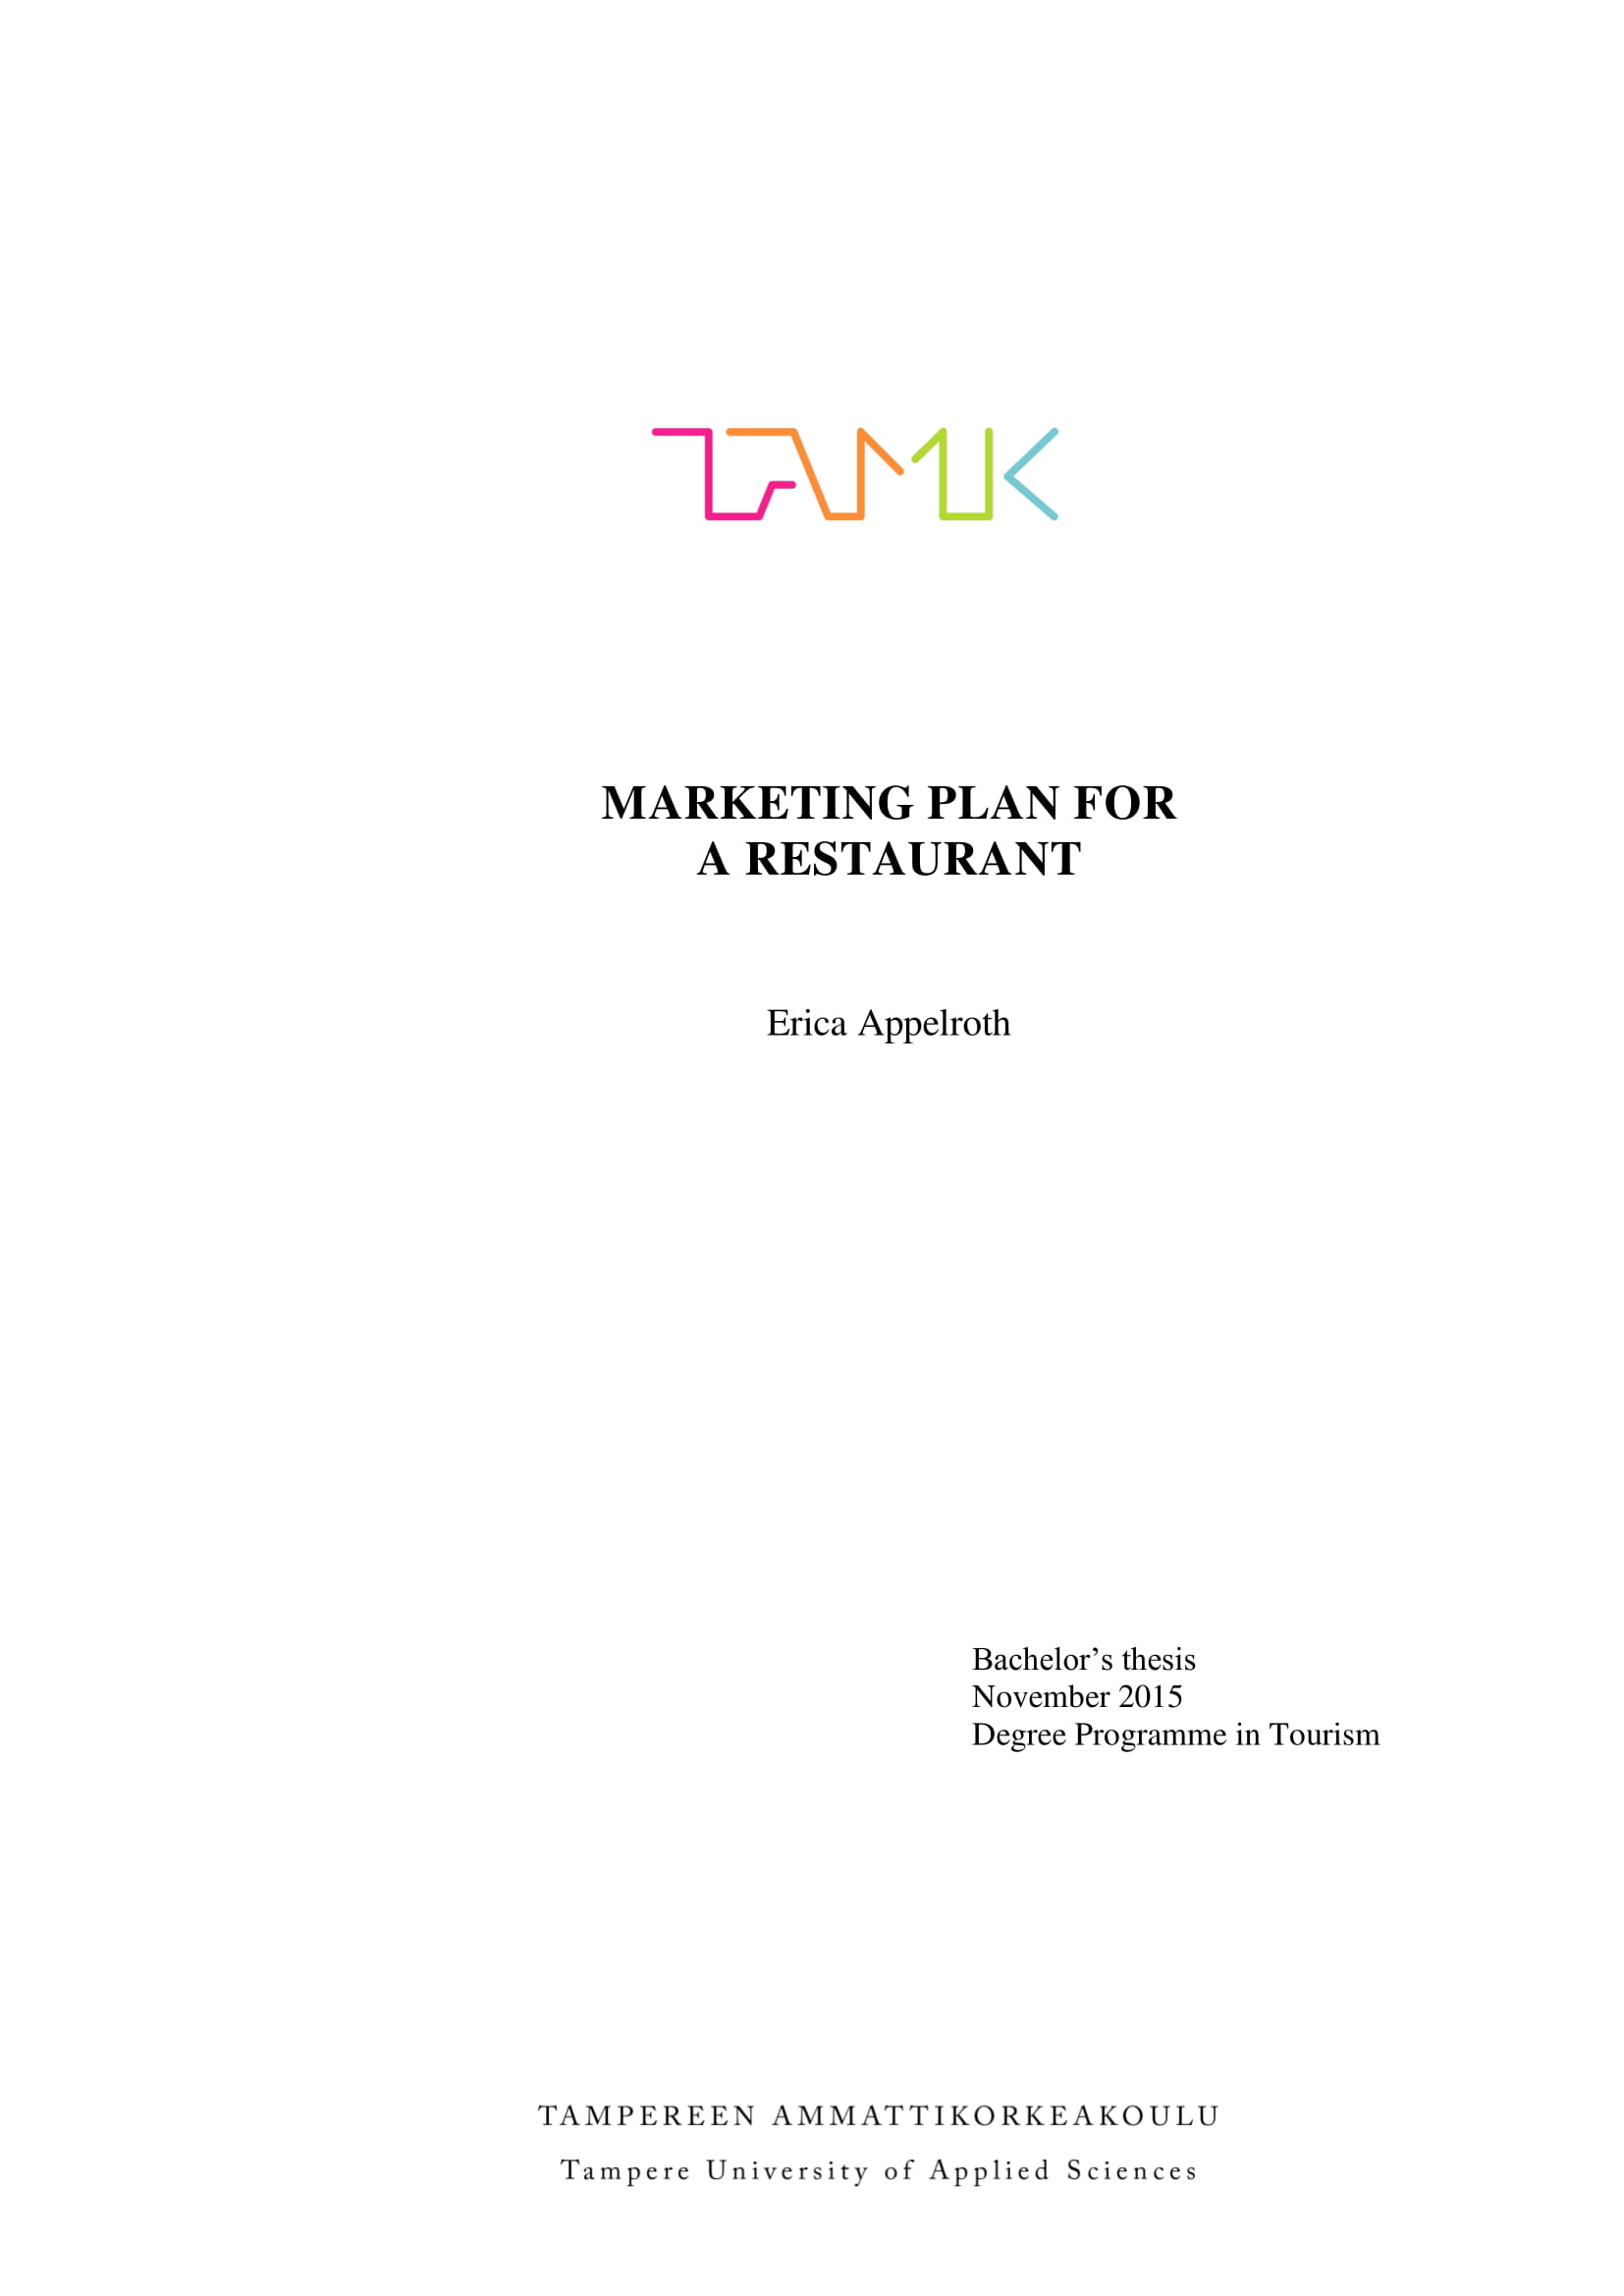 marketing plan for a restaurant with social media activities proposal example 01